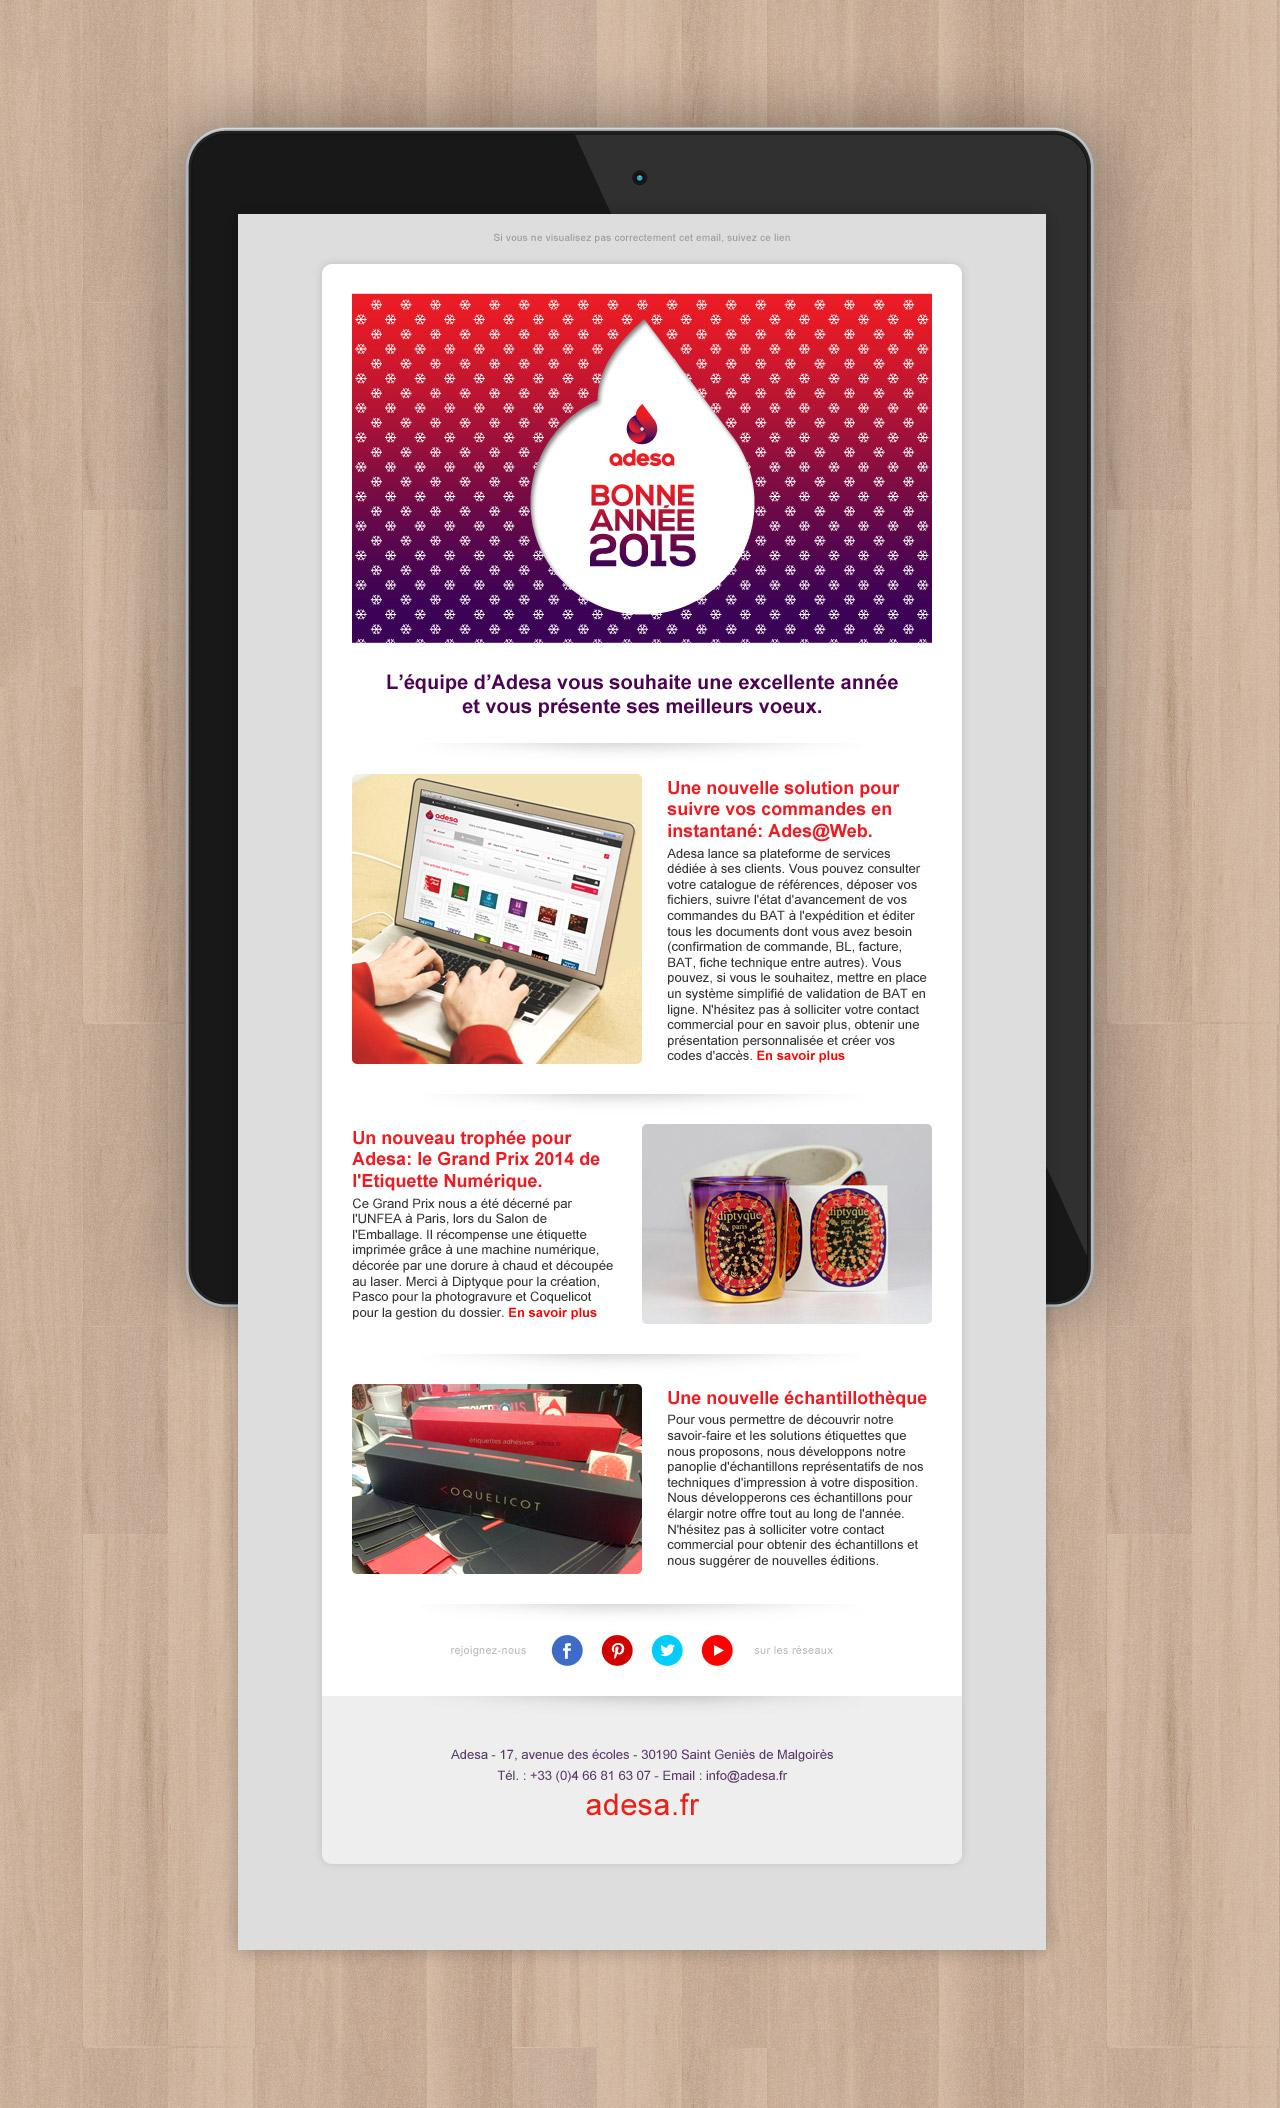 adesa-newsletter-voeux-2015-design-creation-communication-caconcept-alexis-cretin-graphiste